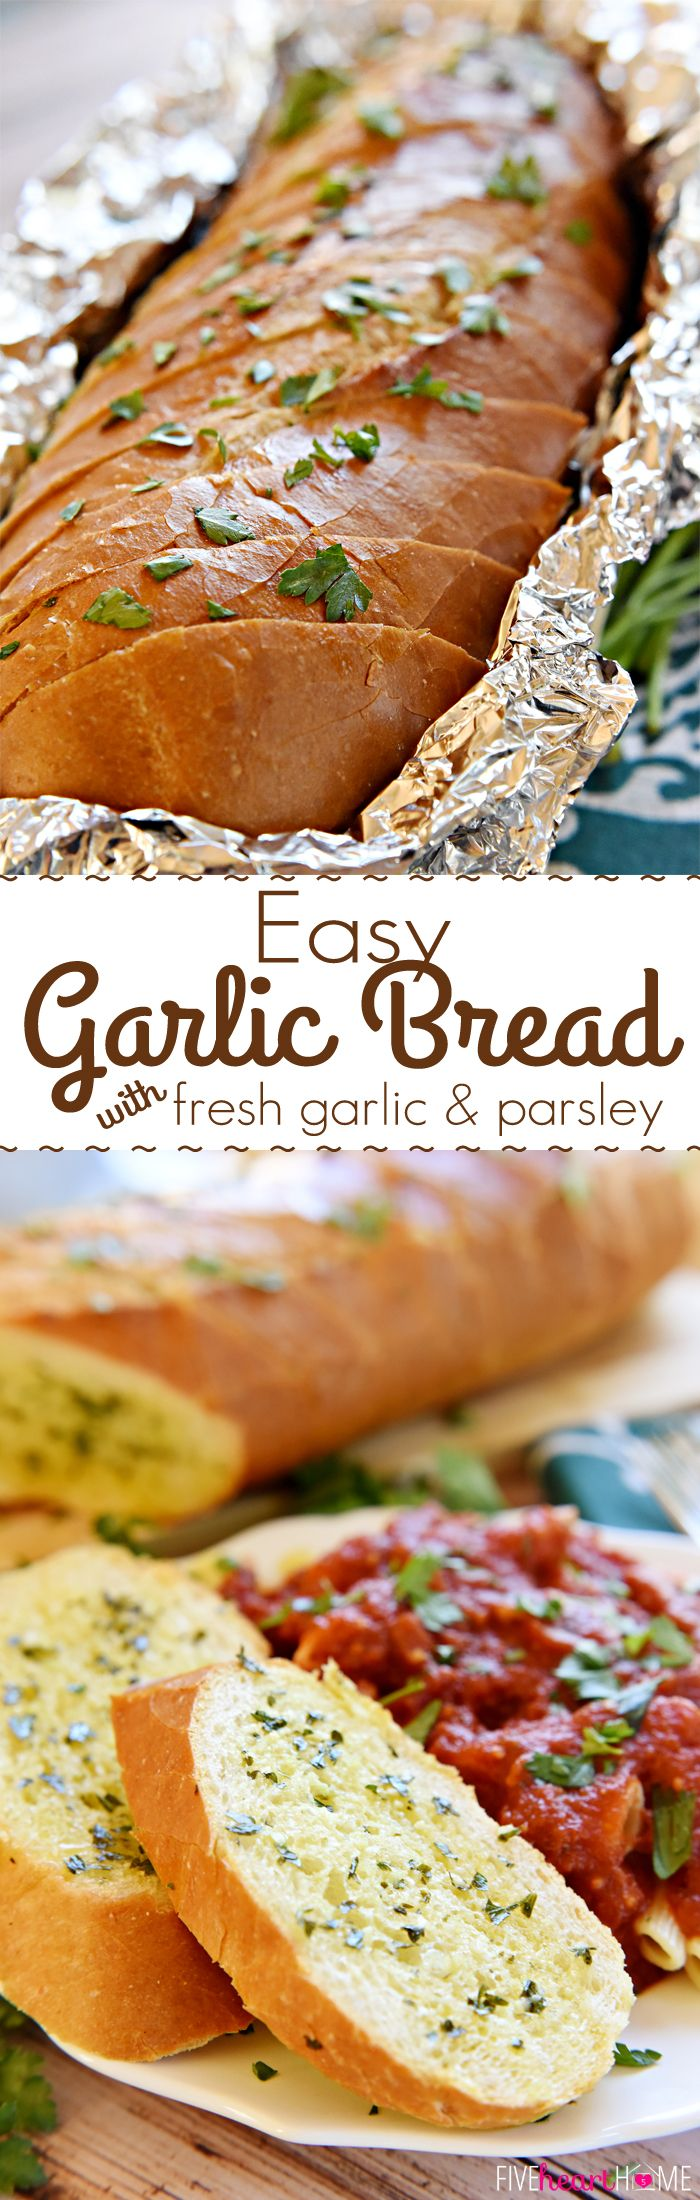 Garlic Bread with Fresh Garlic and Parsley ~ quickly turn a store-bought loaf into the perfect accompaniment for Italian recipes | FiveHeartHome.com #garlicbread #recipe #Italian